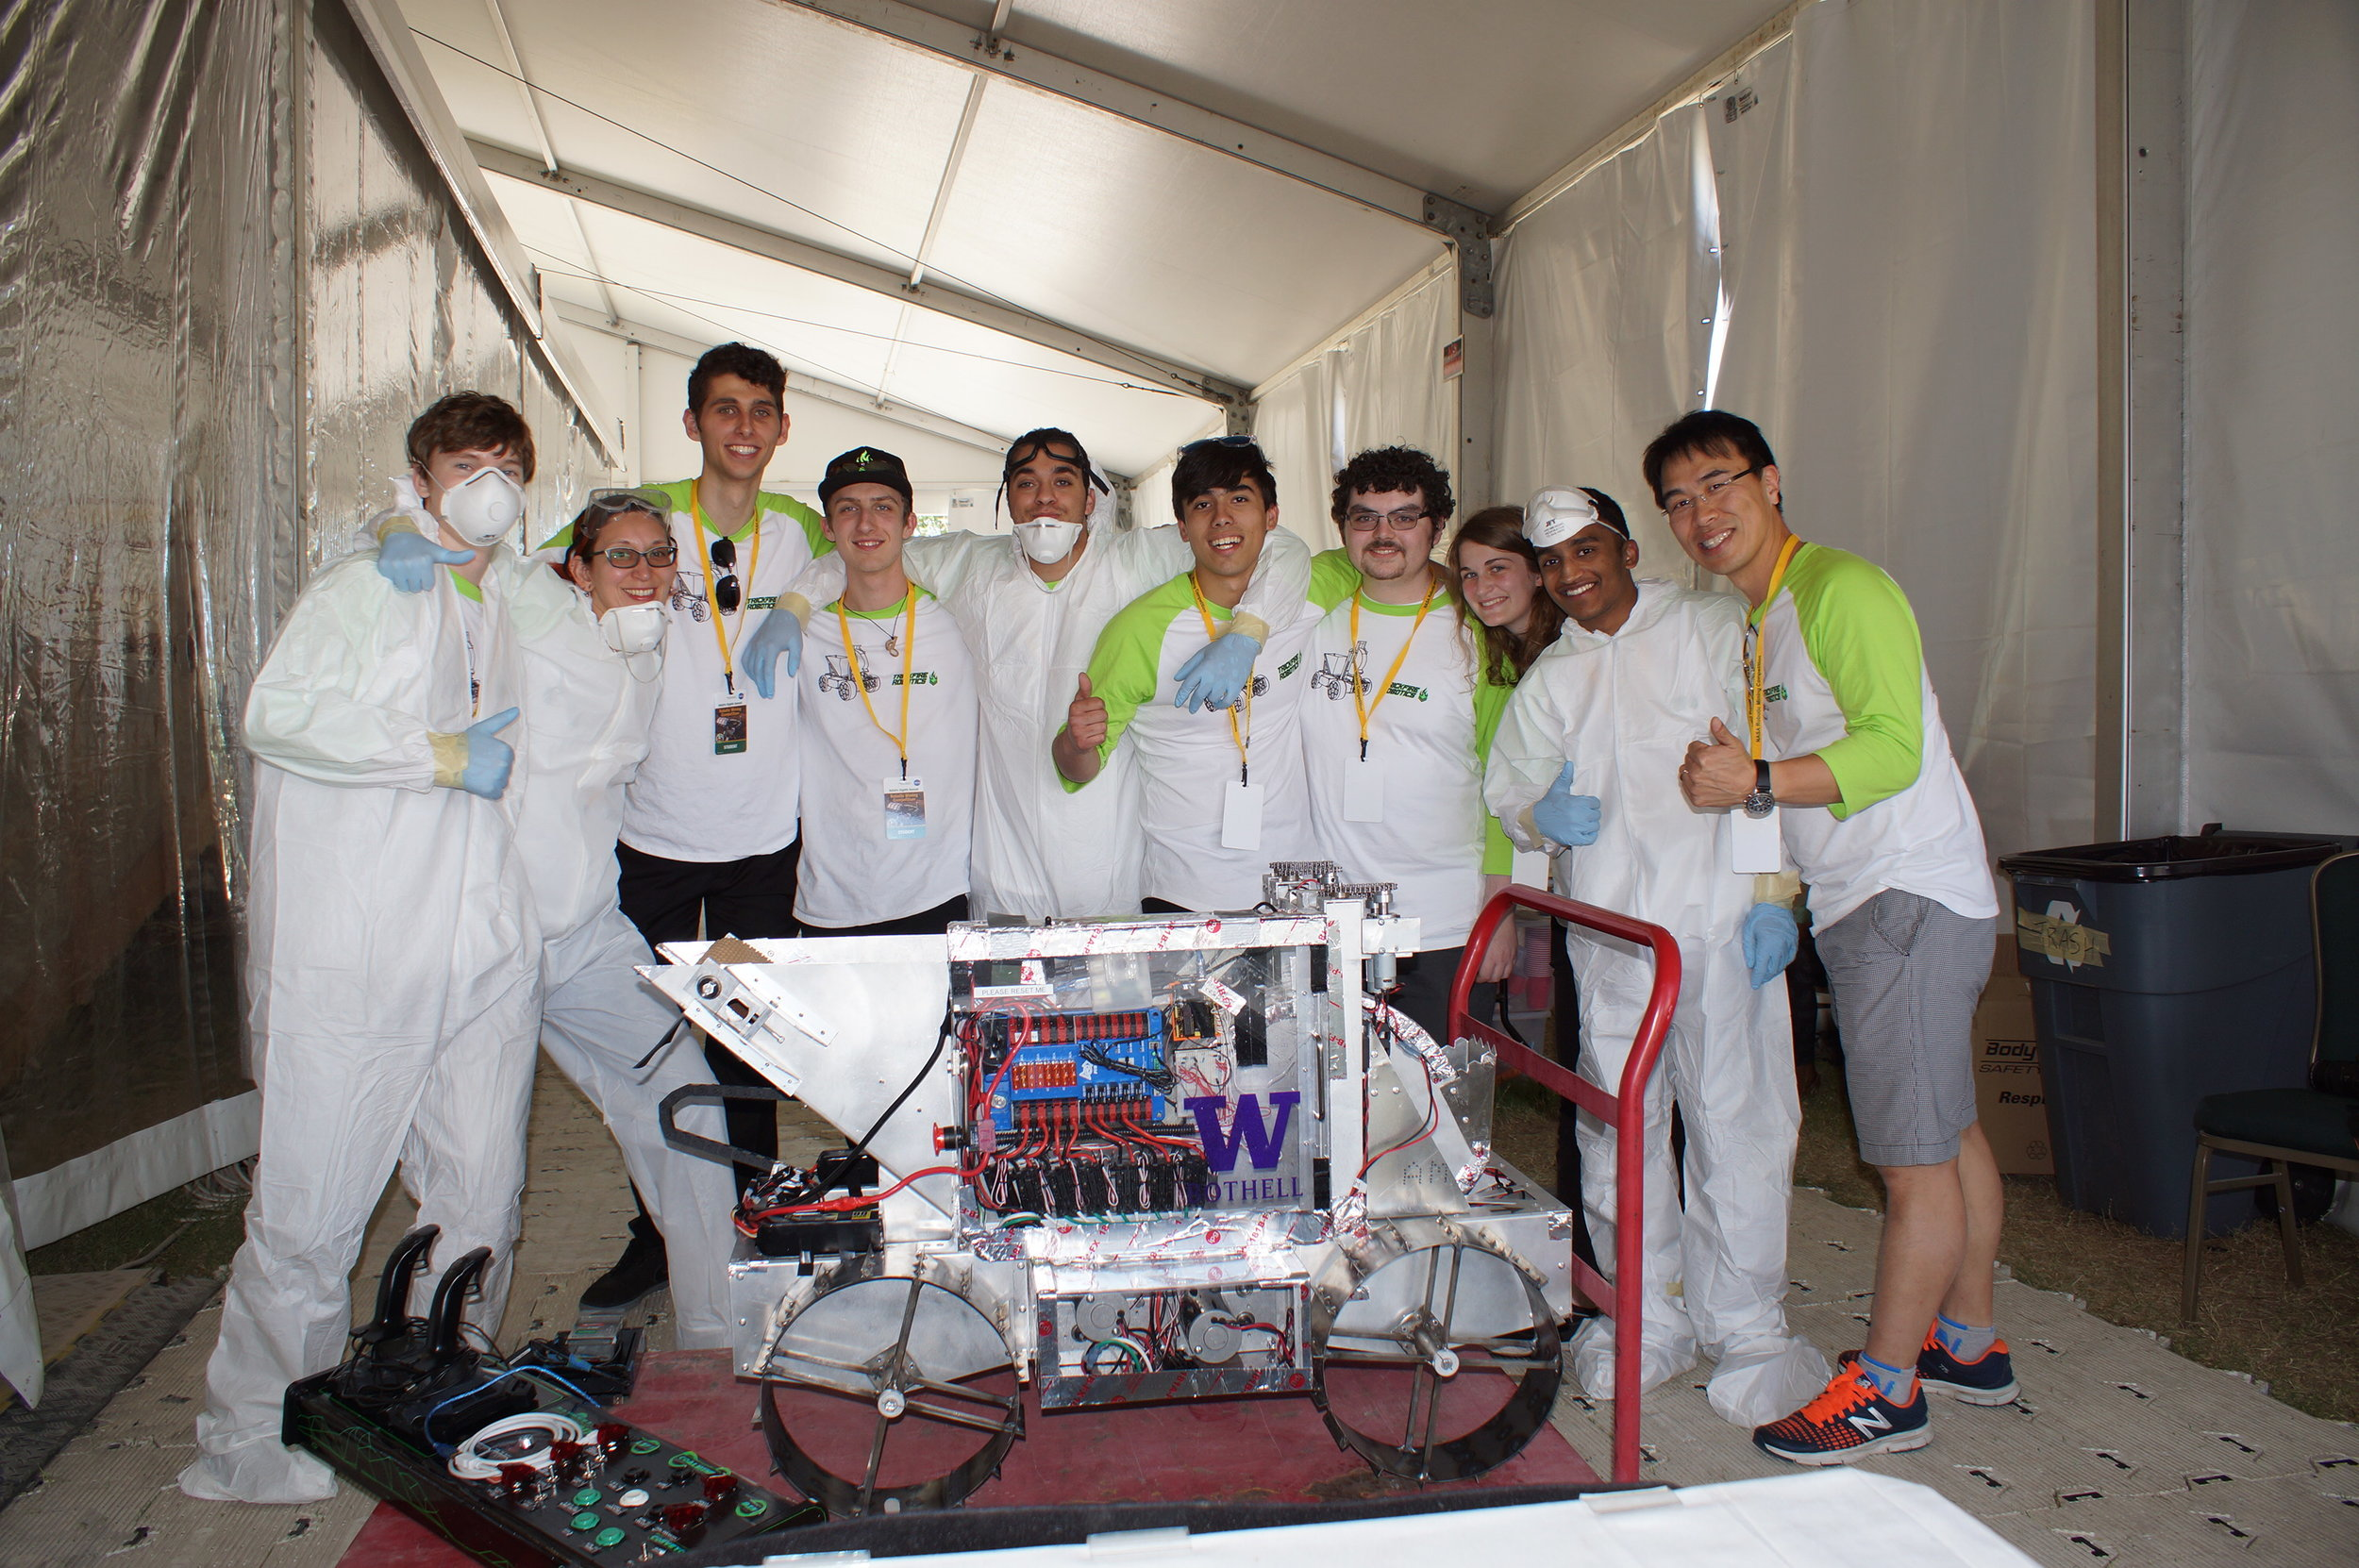 Design it. Build it. Dig it. - A portfolio component on my experience of the NASA Robotic Mining Competition 2017